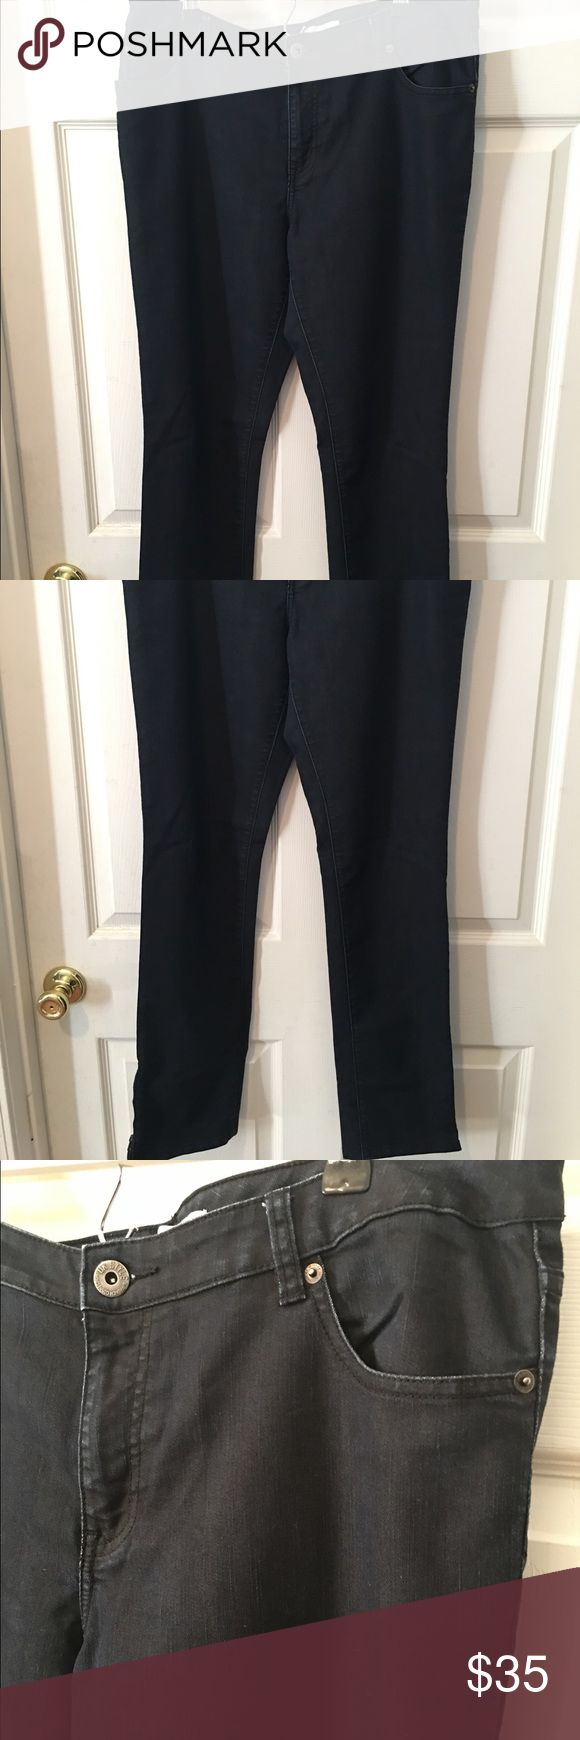 "French Connection Skinny jeans!💙👖 Beautiful & super condition French Connection skinny jeans! Great dark color & zipper feature at ankles. 31"" inseam. 62% cotton, 20% elasterell, 18% polyester. 🎀 French Connection Jeans Skinny"